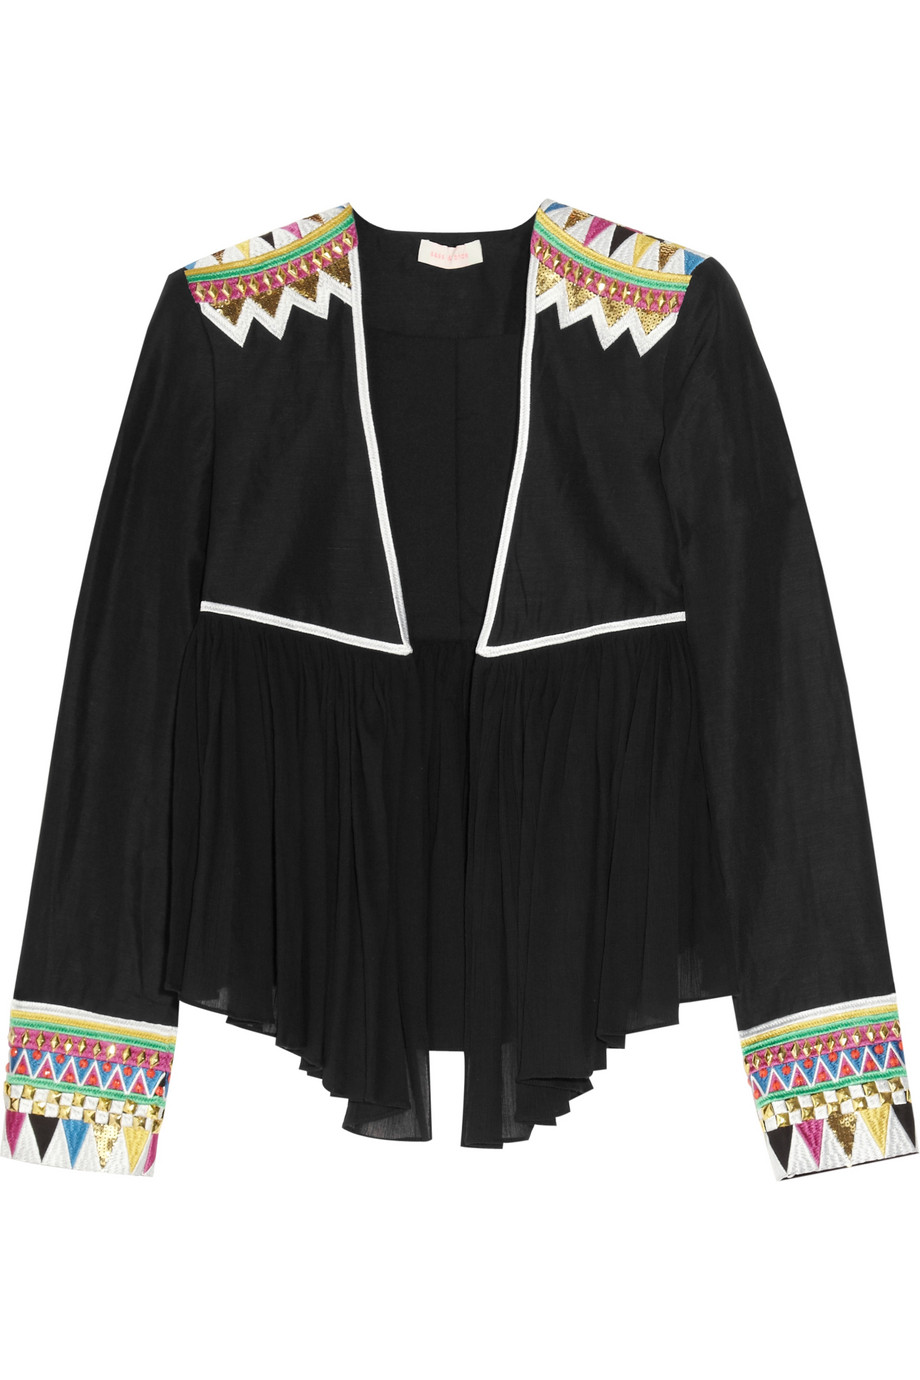 Sass & bide My Favourite Game embroidered silk-blend jacket - 54% Off Now at THE OUTNET